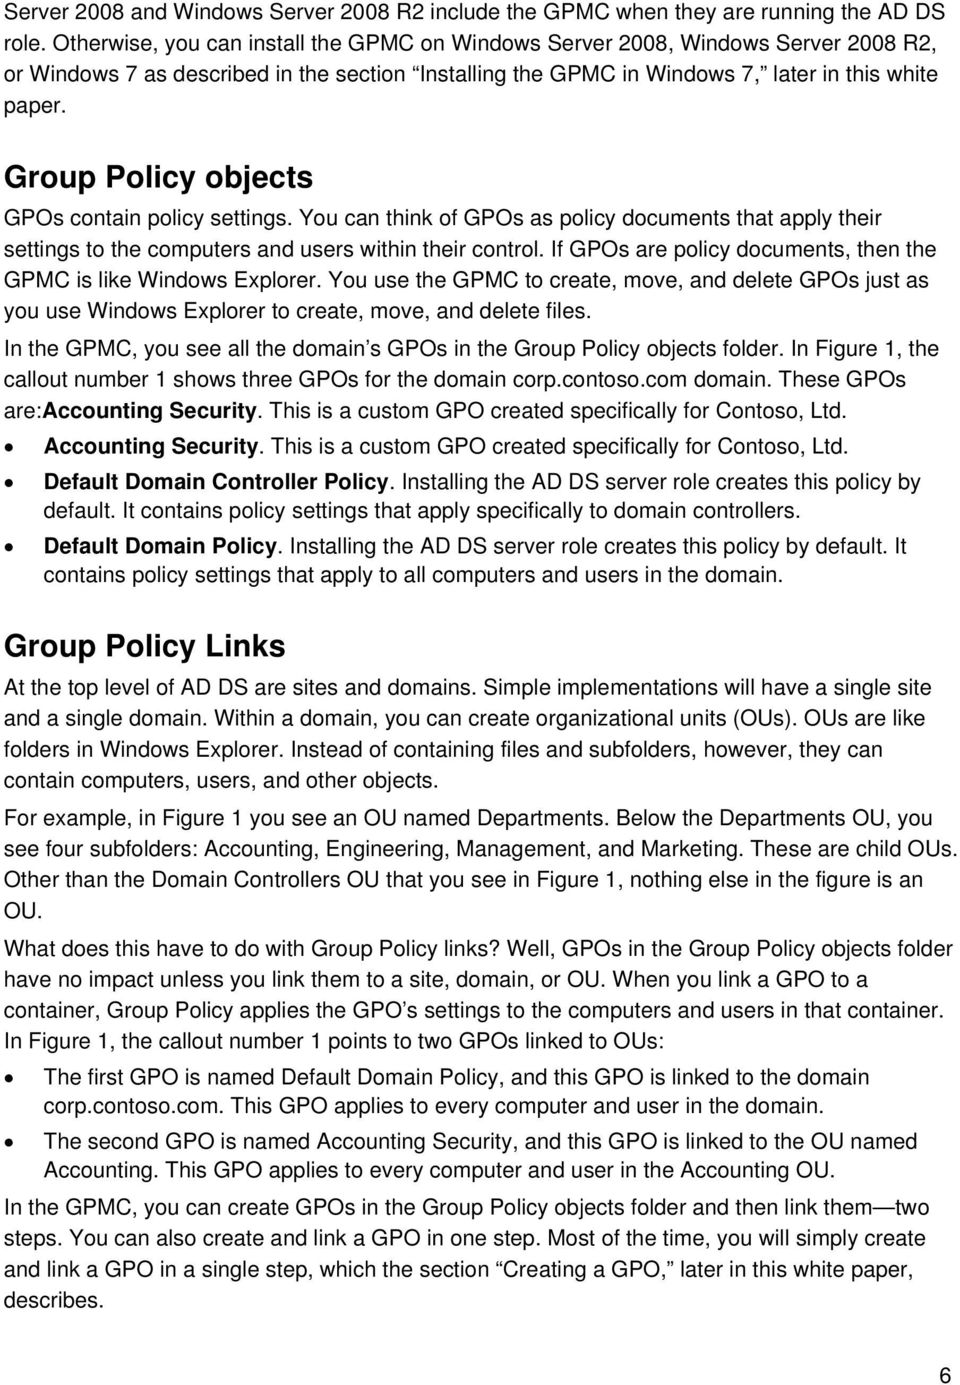 Group Policy objects GPOs contain policy settings. You can think of GPOs as policy documents that apply their settings to the computers and users within their control.